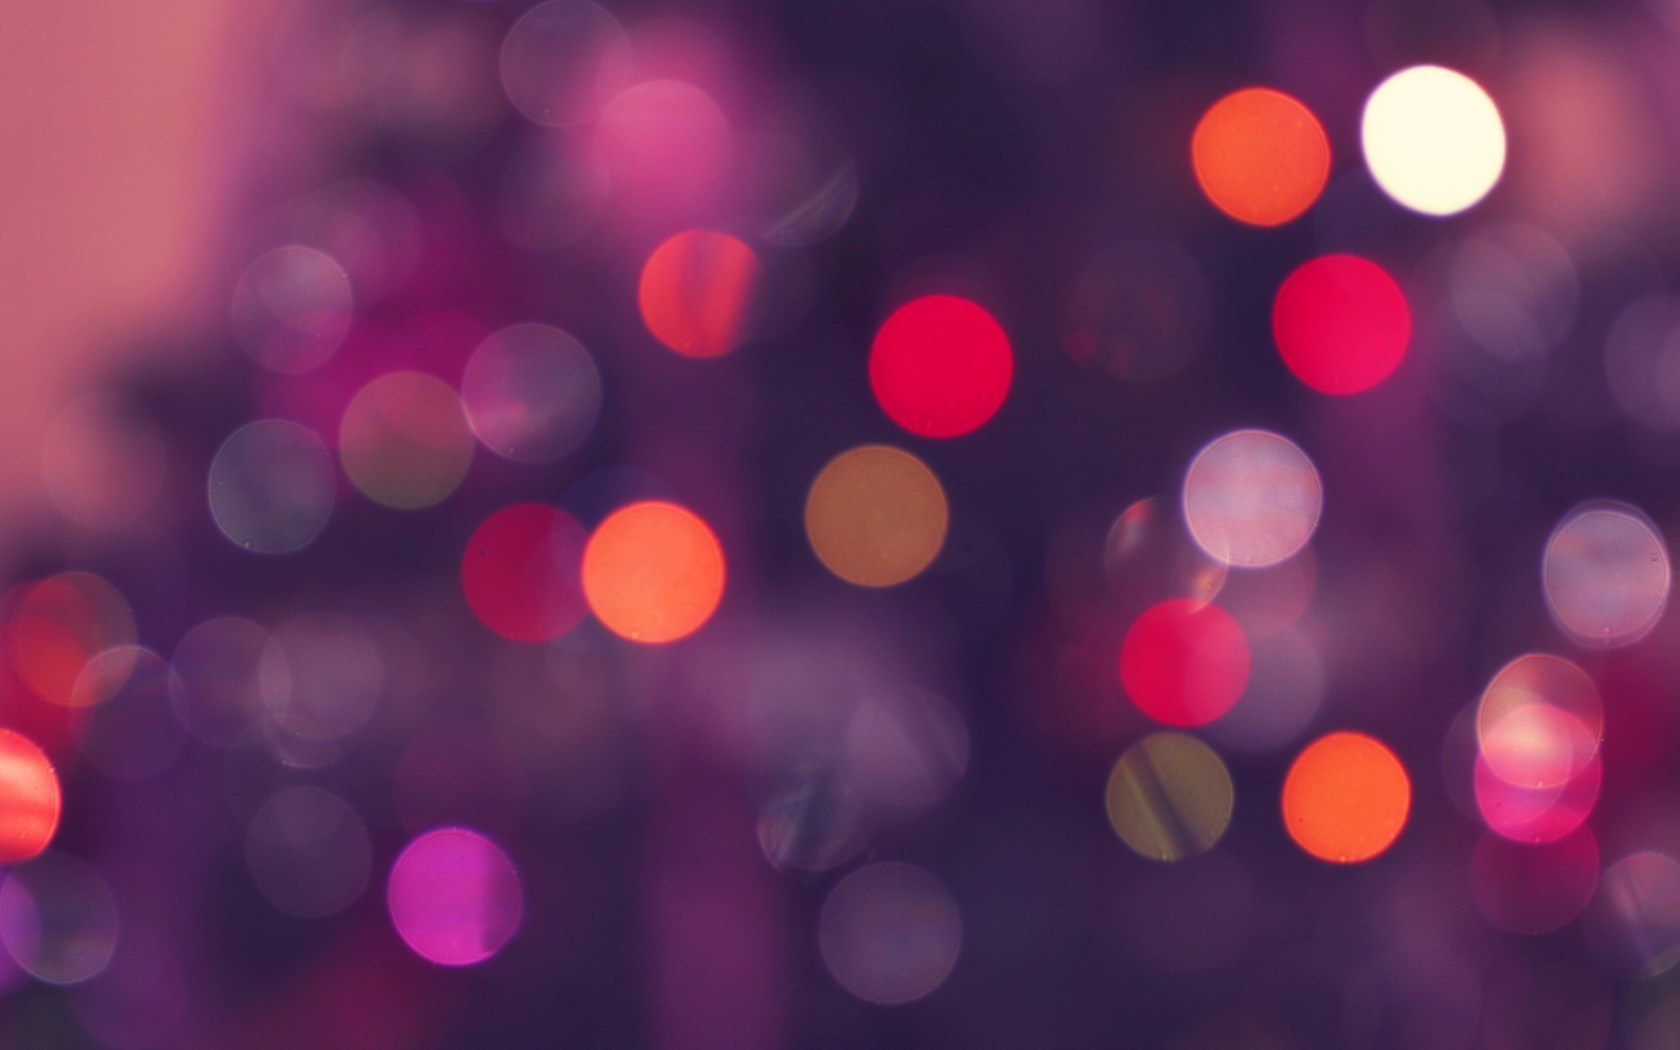 Bokeh Circles Photo